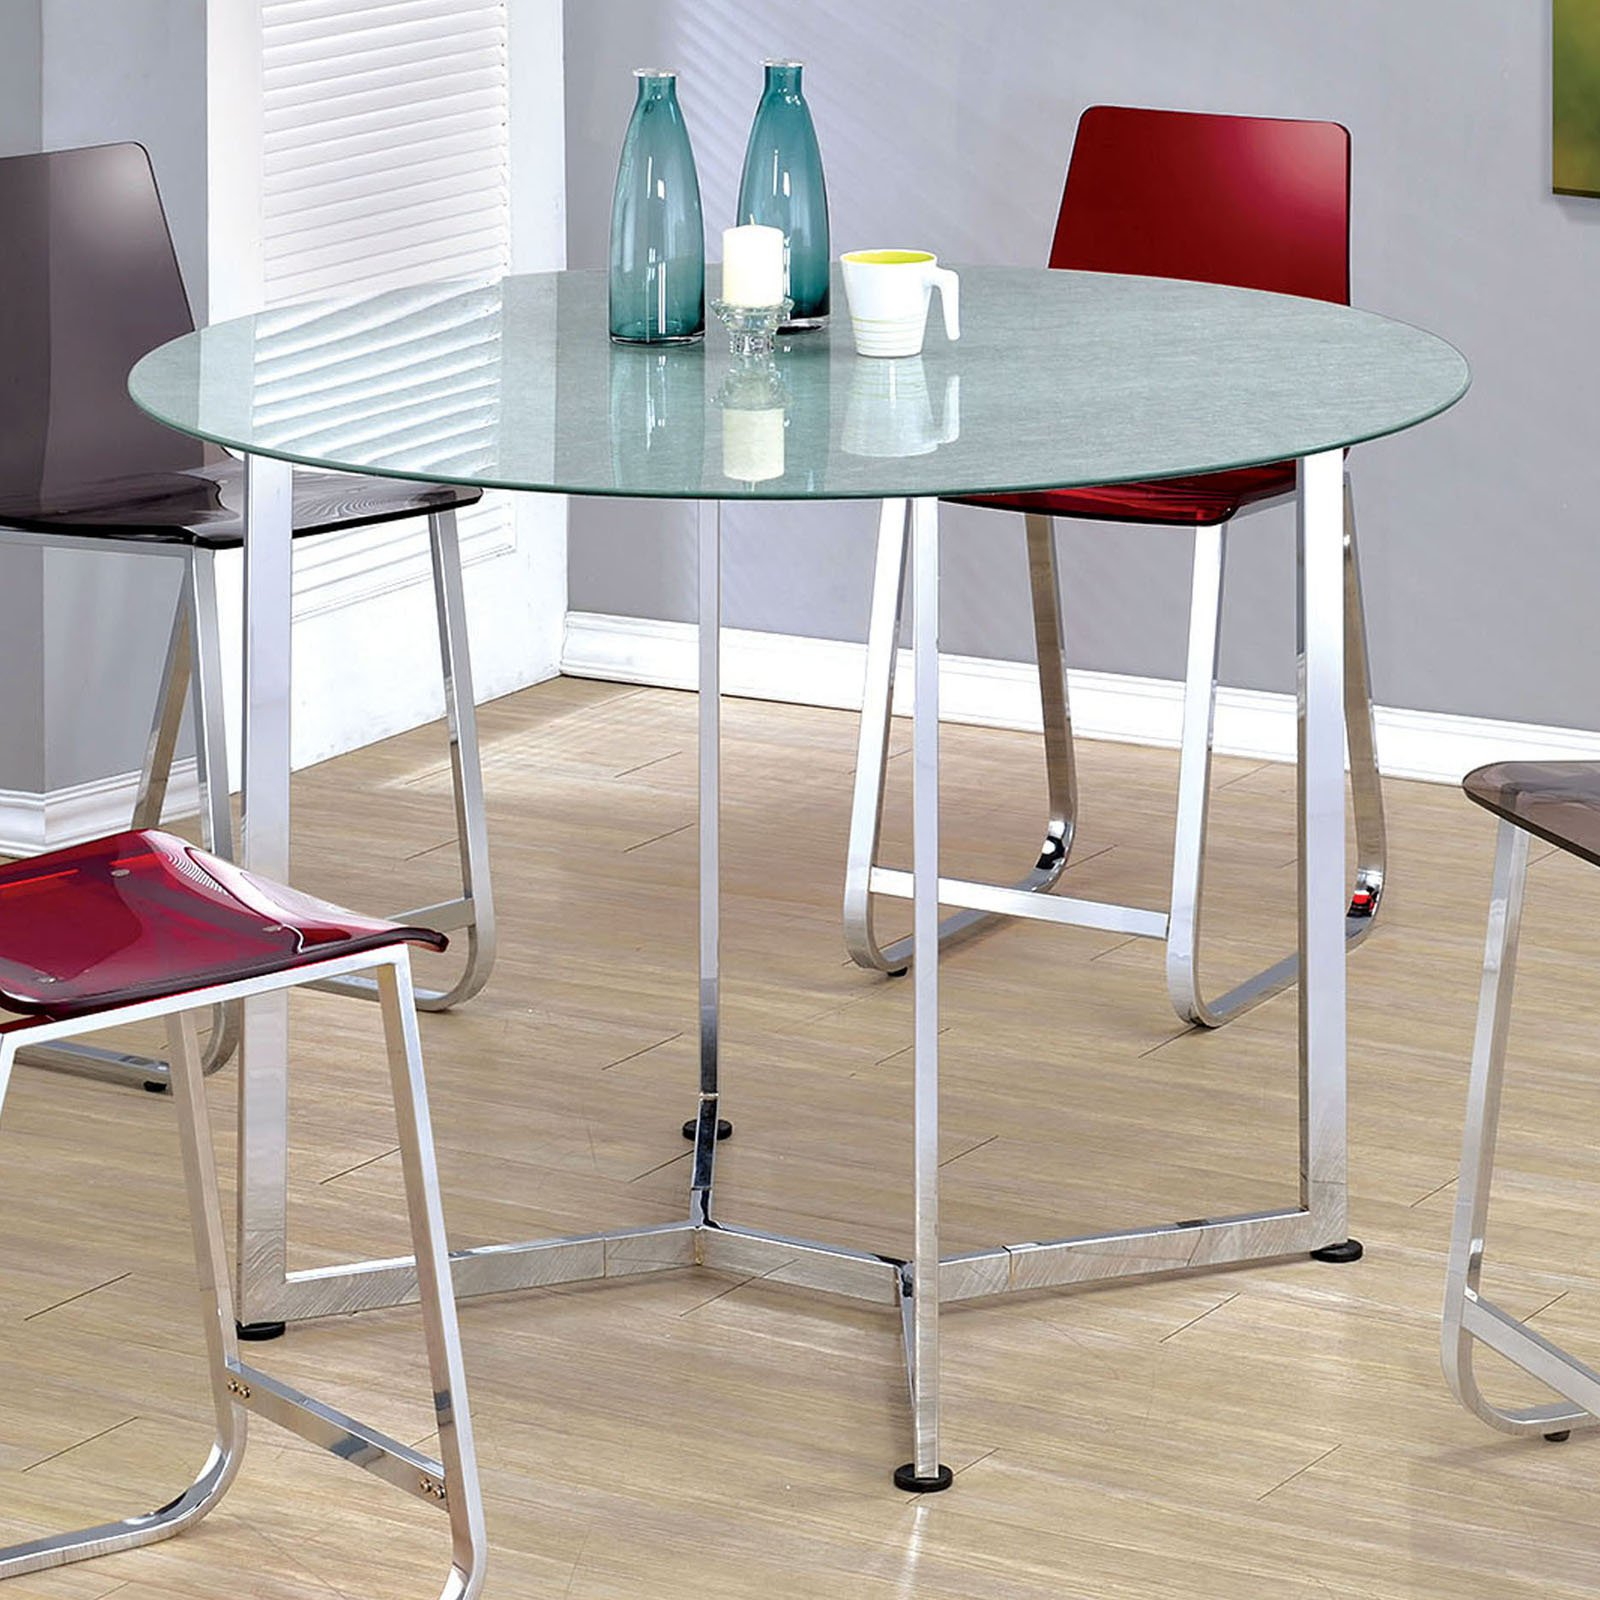 Furniture of America Barris Counter Height Table